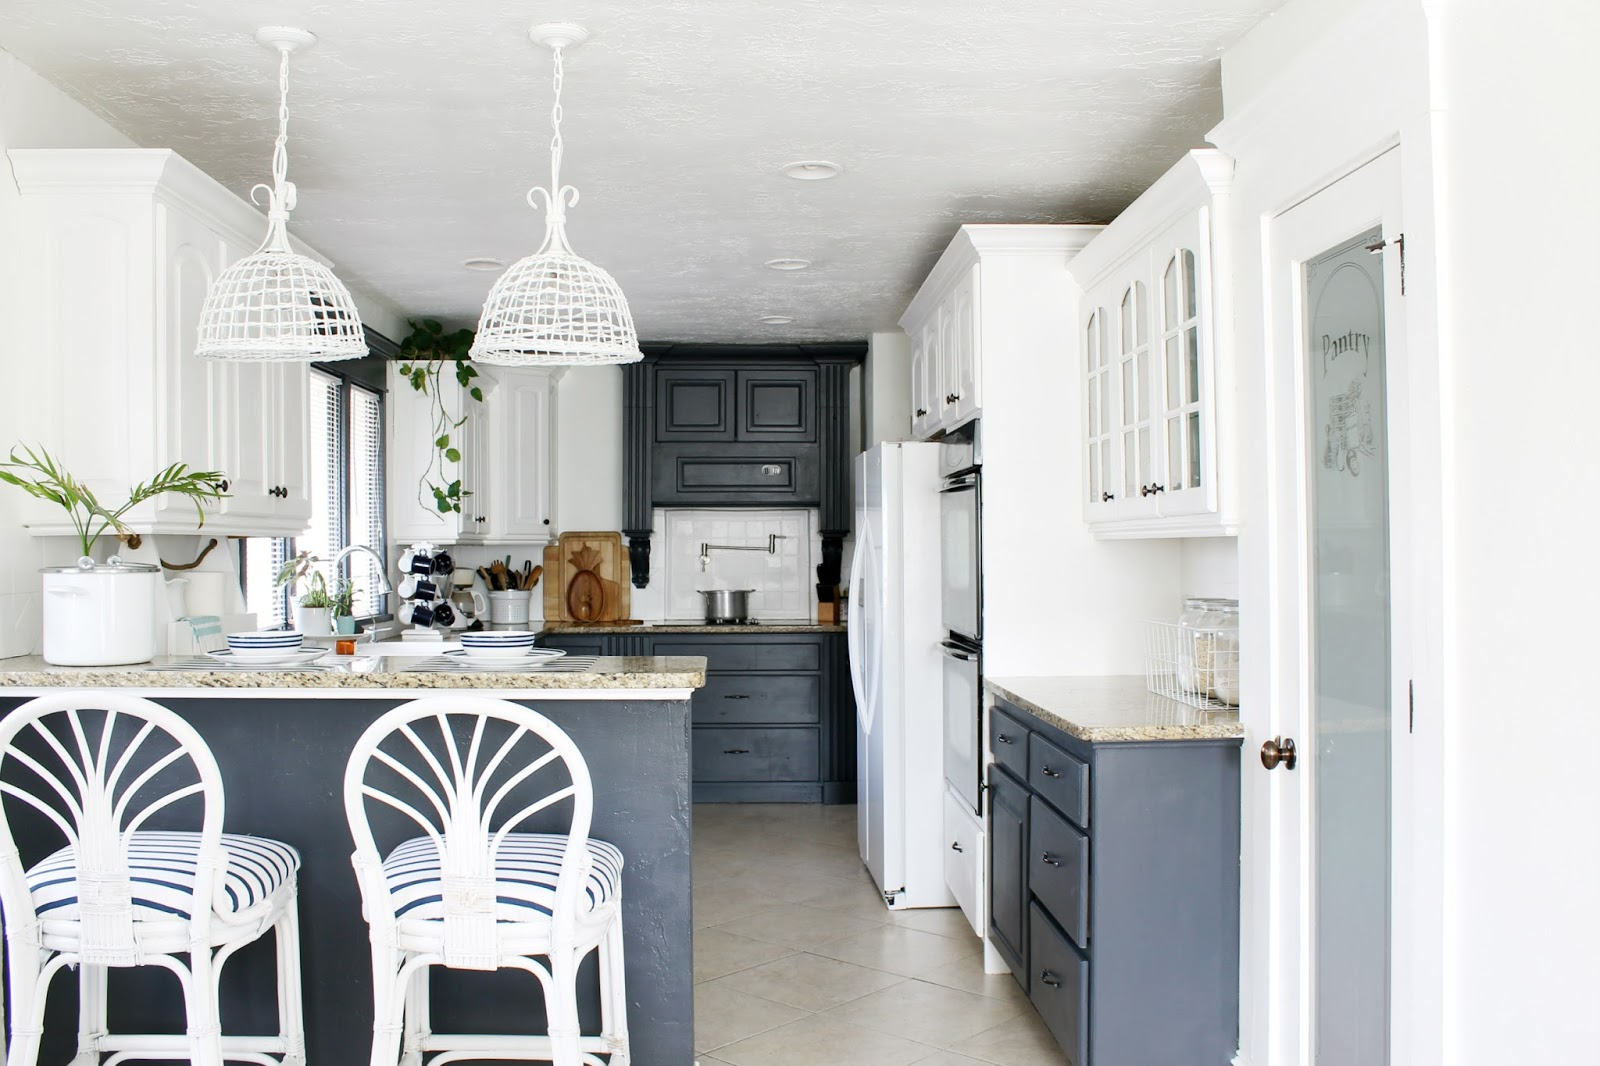 My ZEN KITCHEN Makeover - New Paint Color Reveal! - The Wicker House